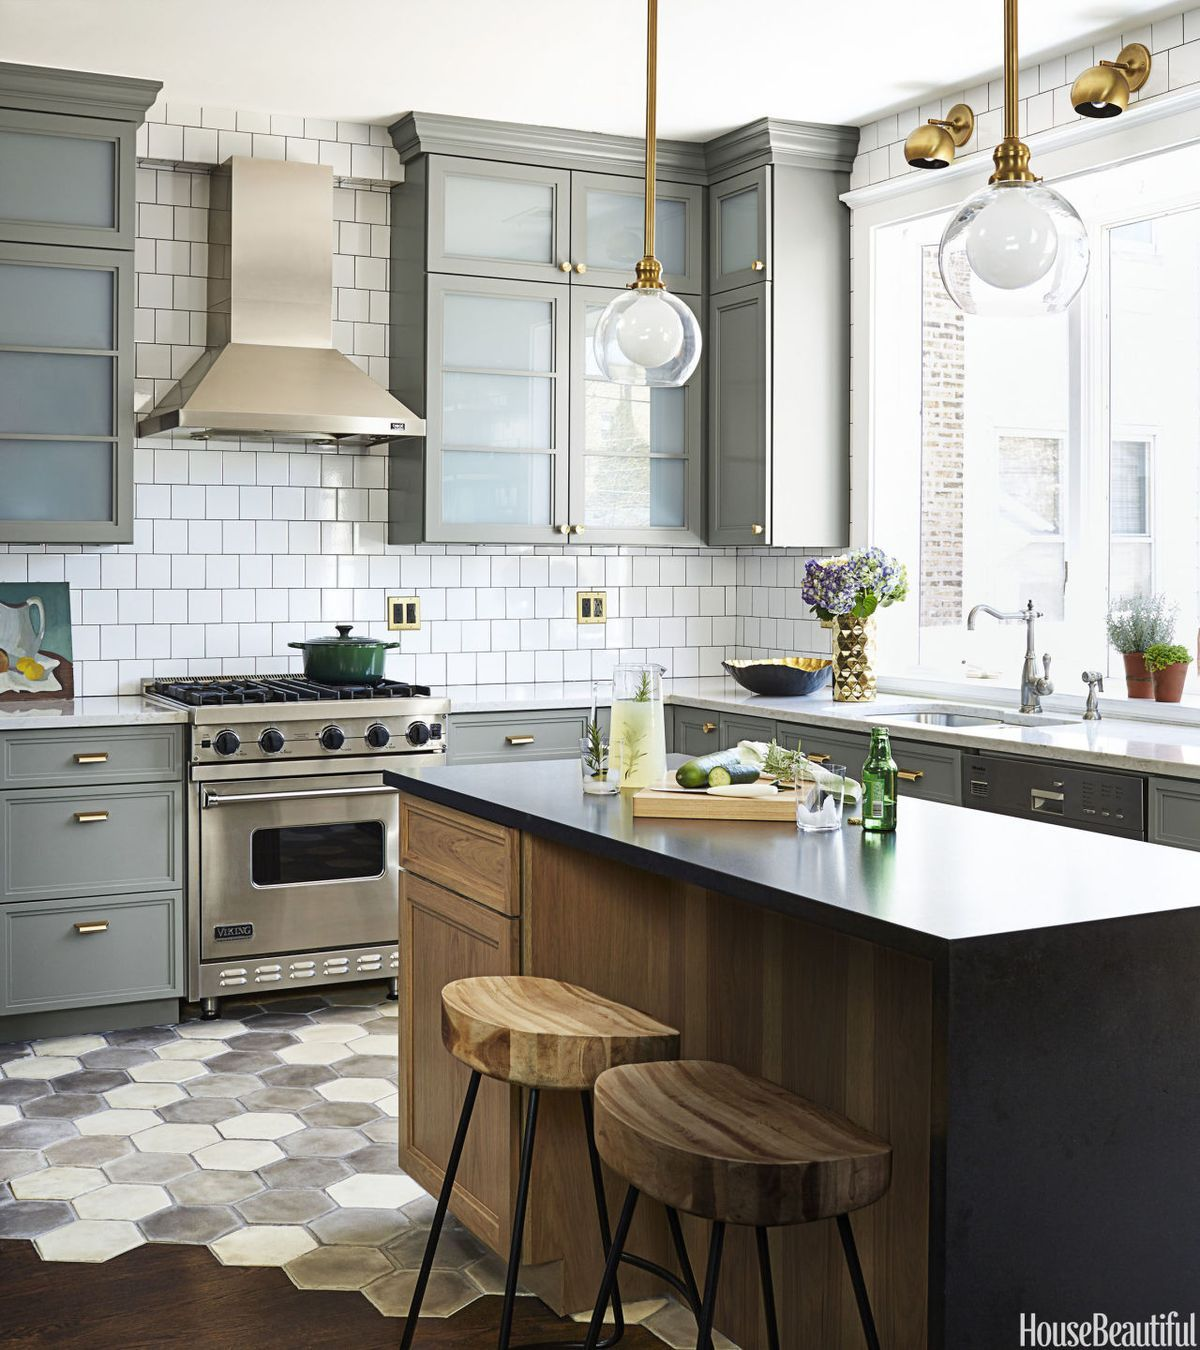 A Chicago Kitchen In A Muted Palette House Beautiful Kitchens Kitchen Inspirations Kitchen Flooring